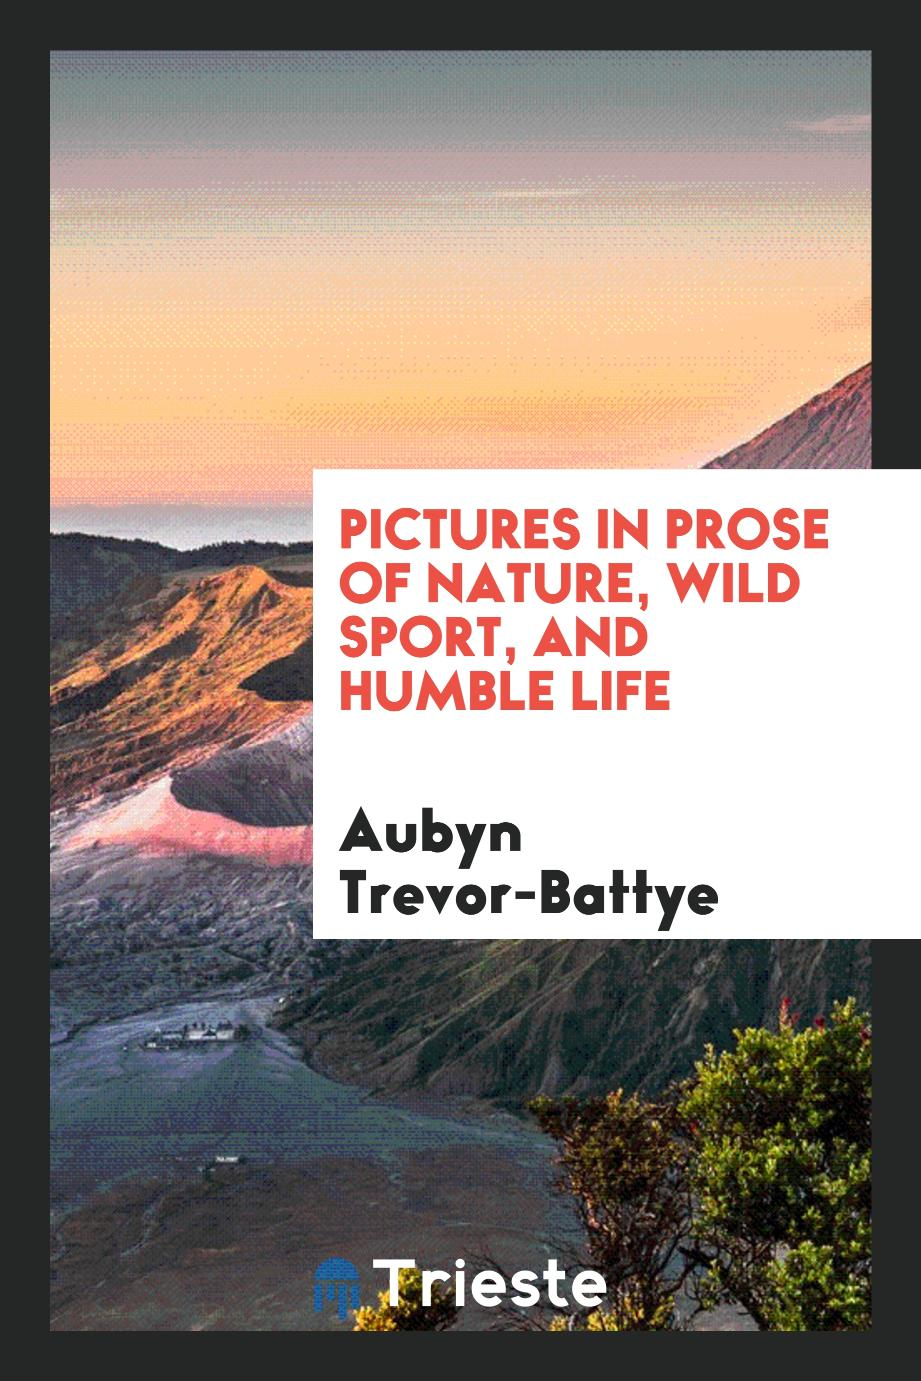 Pictures in prose of nature, wild sport, and humble life